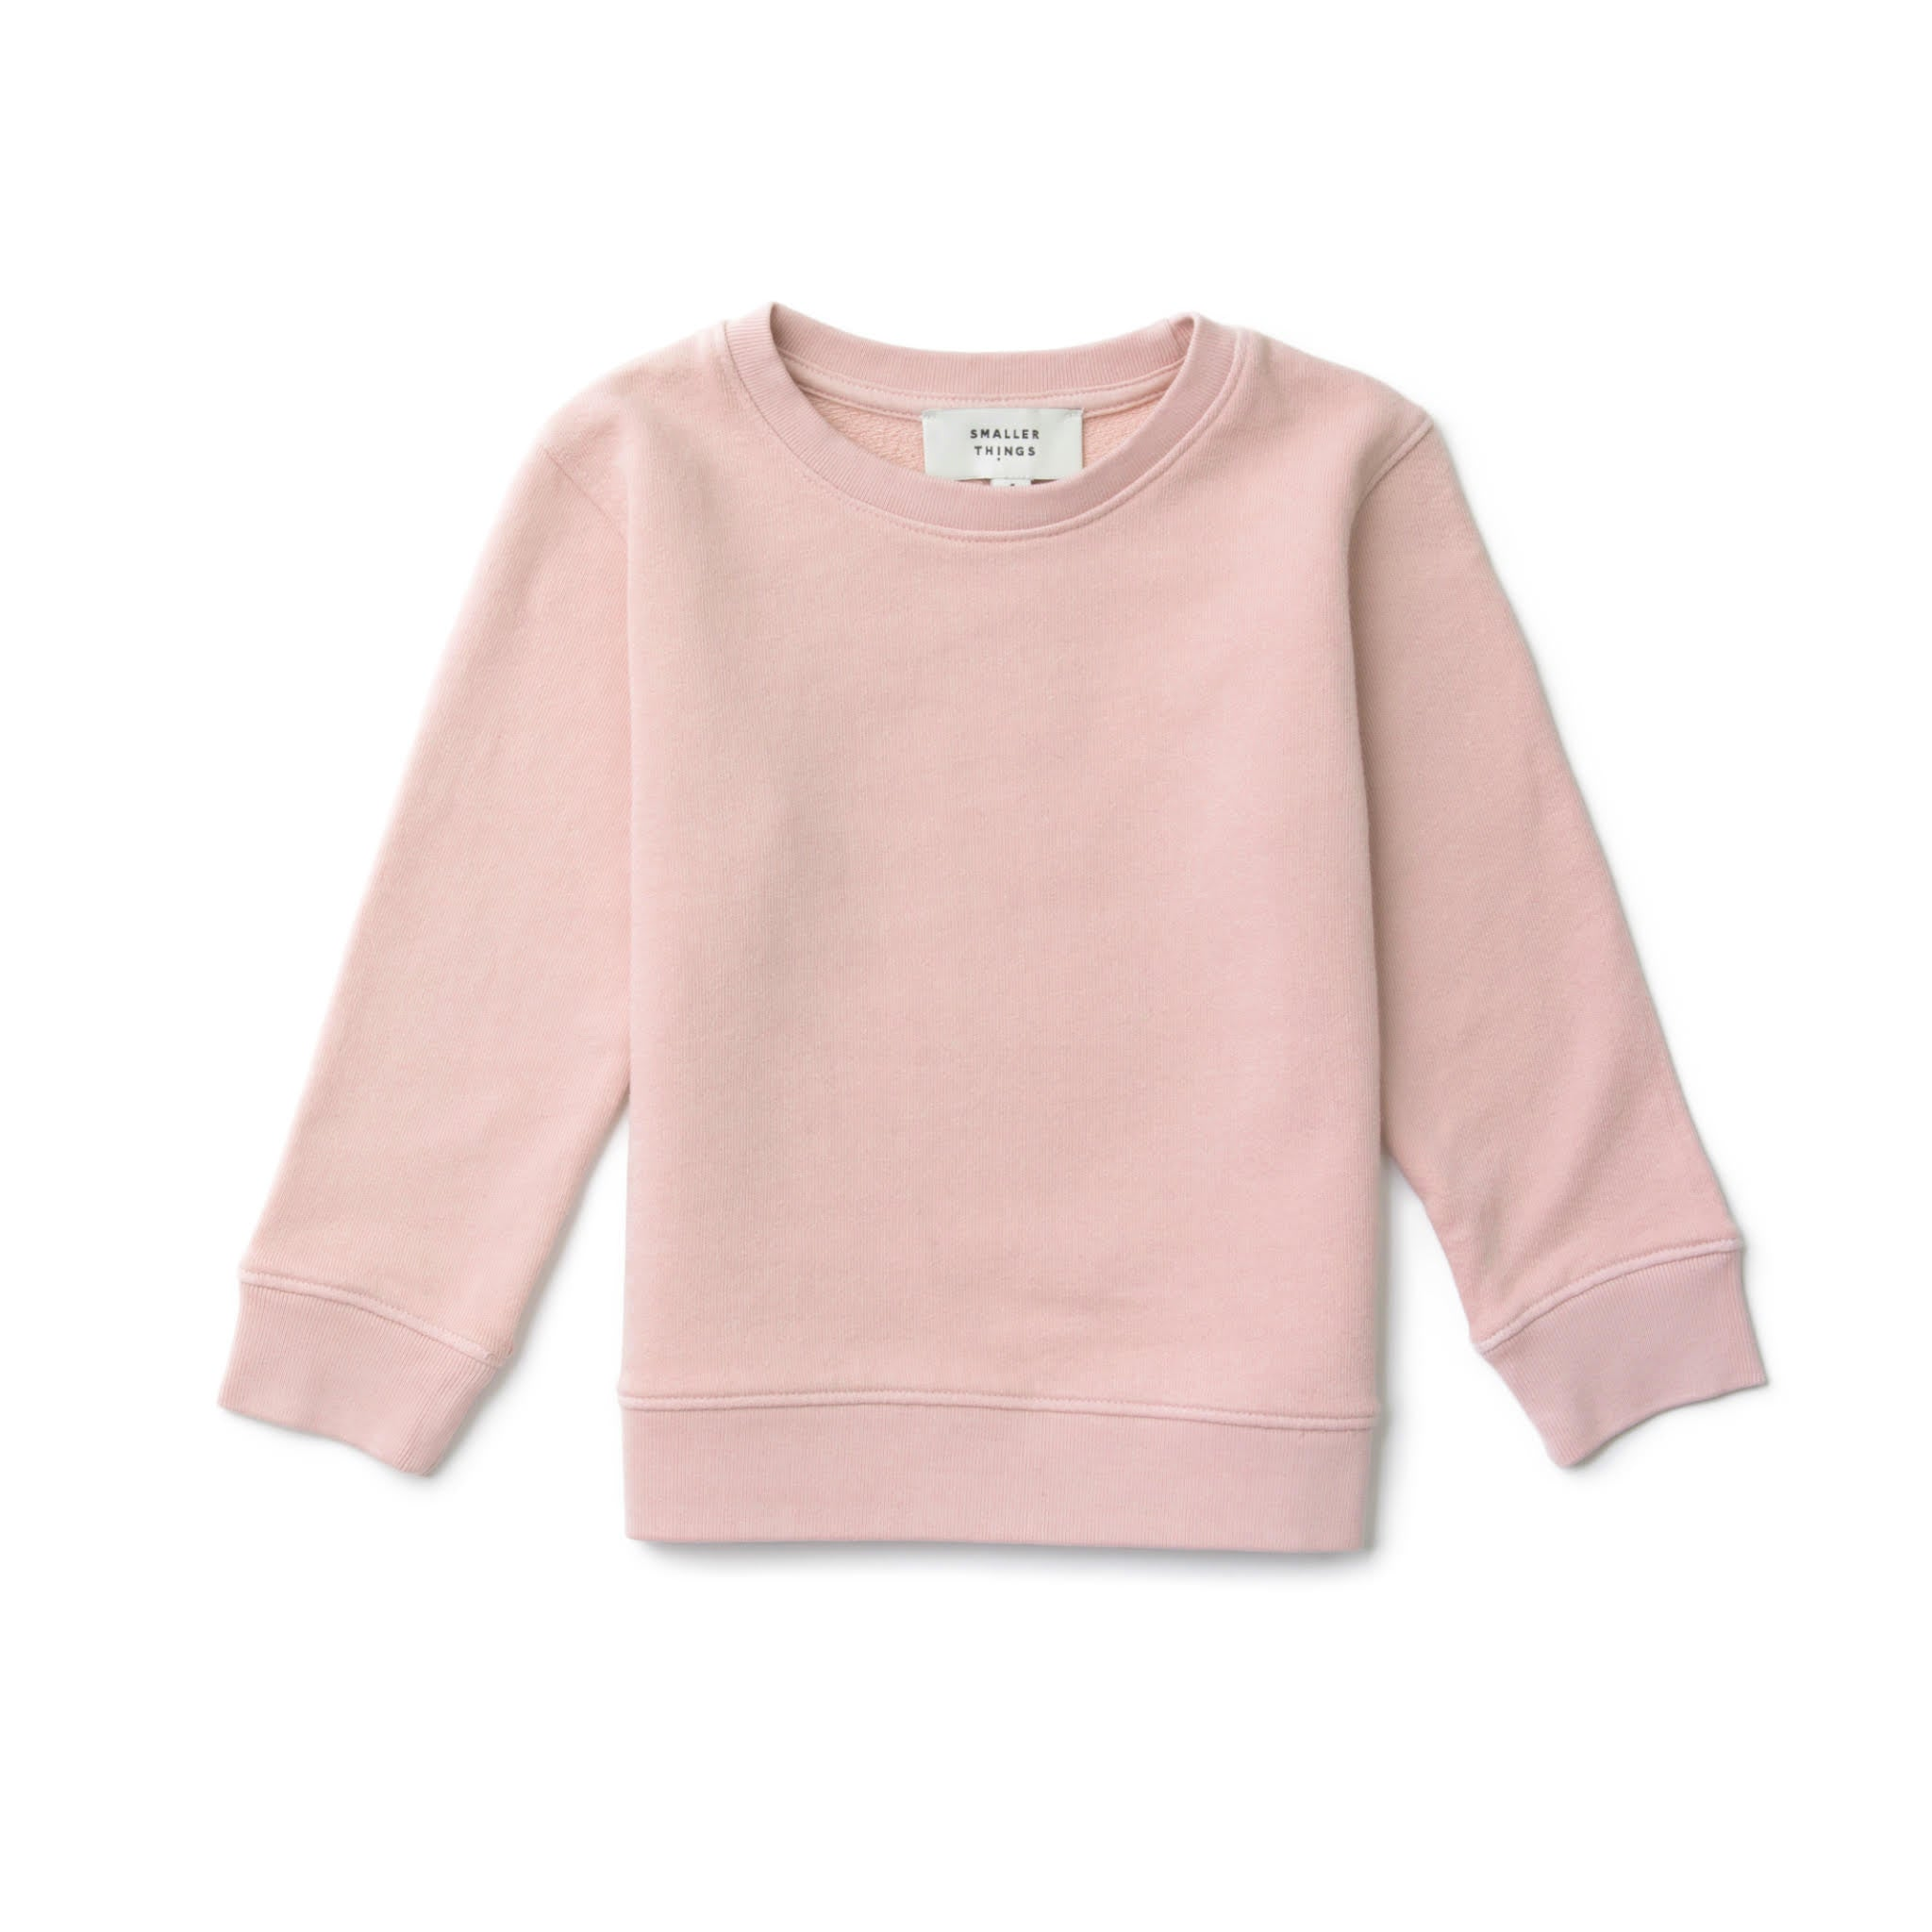 Smaller Things Organic Sweatshirt Pink